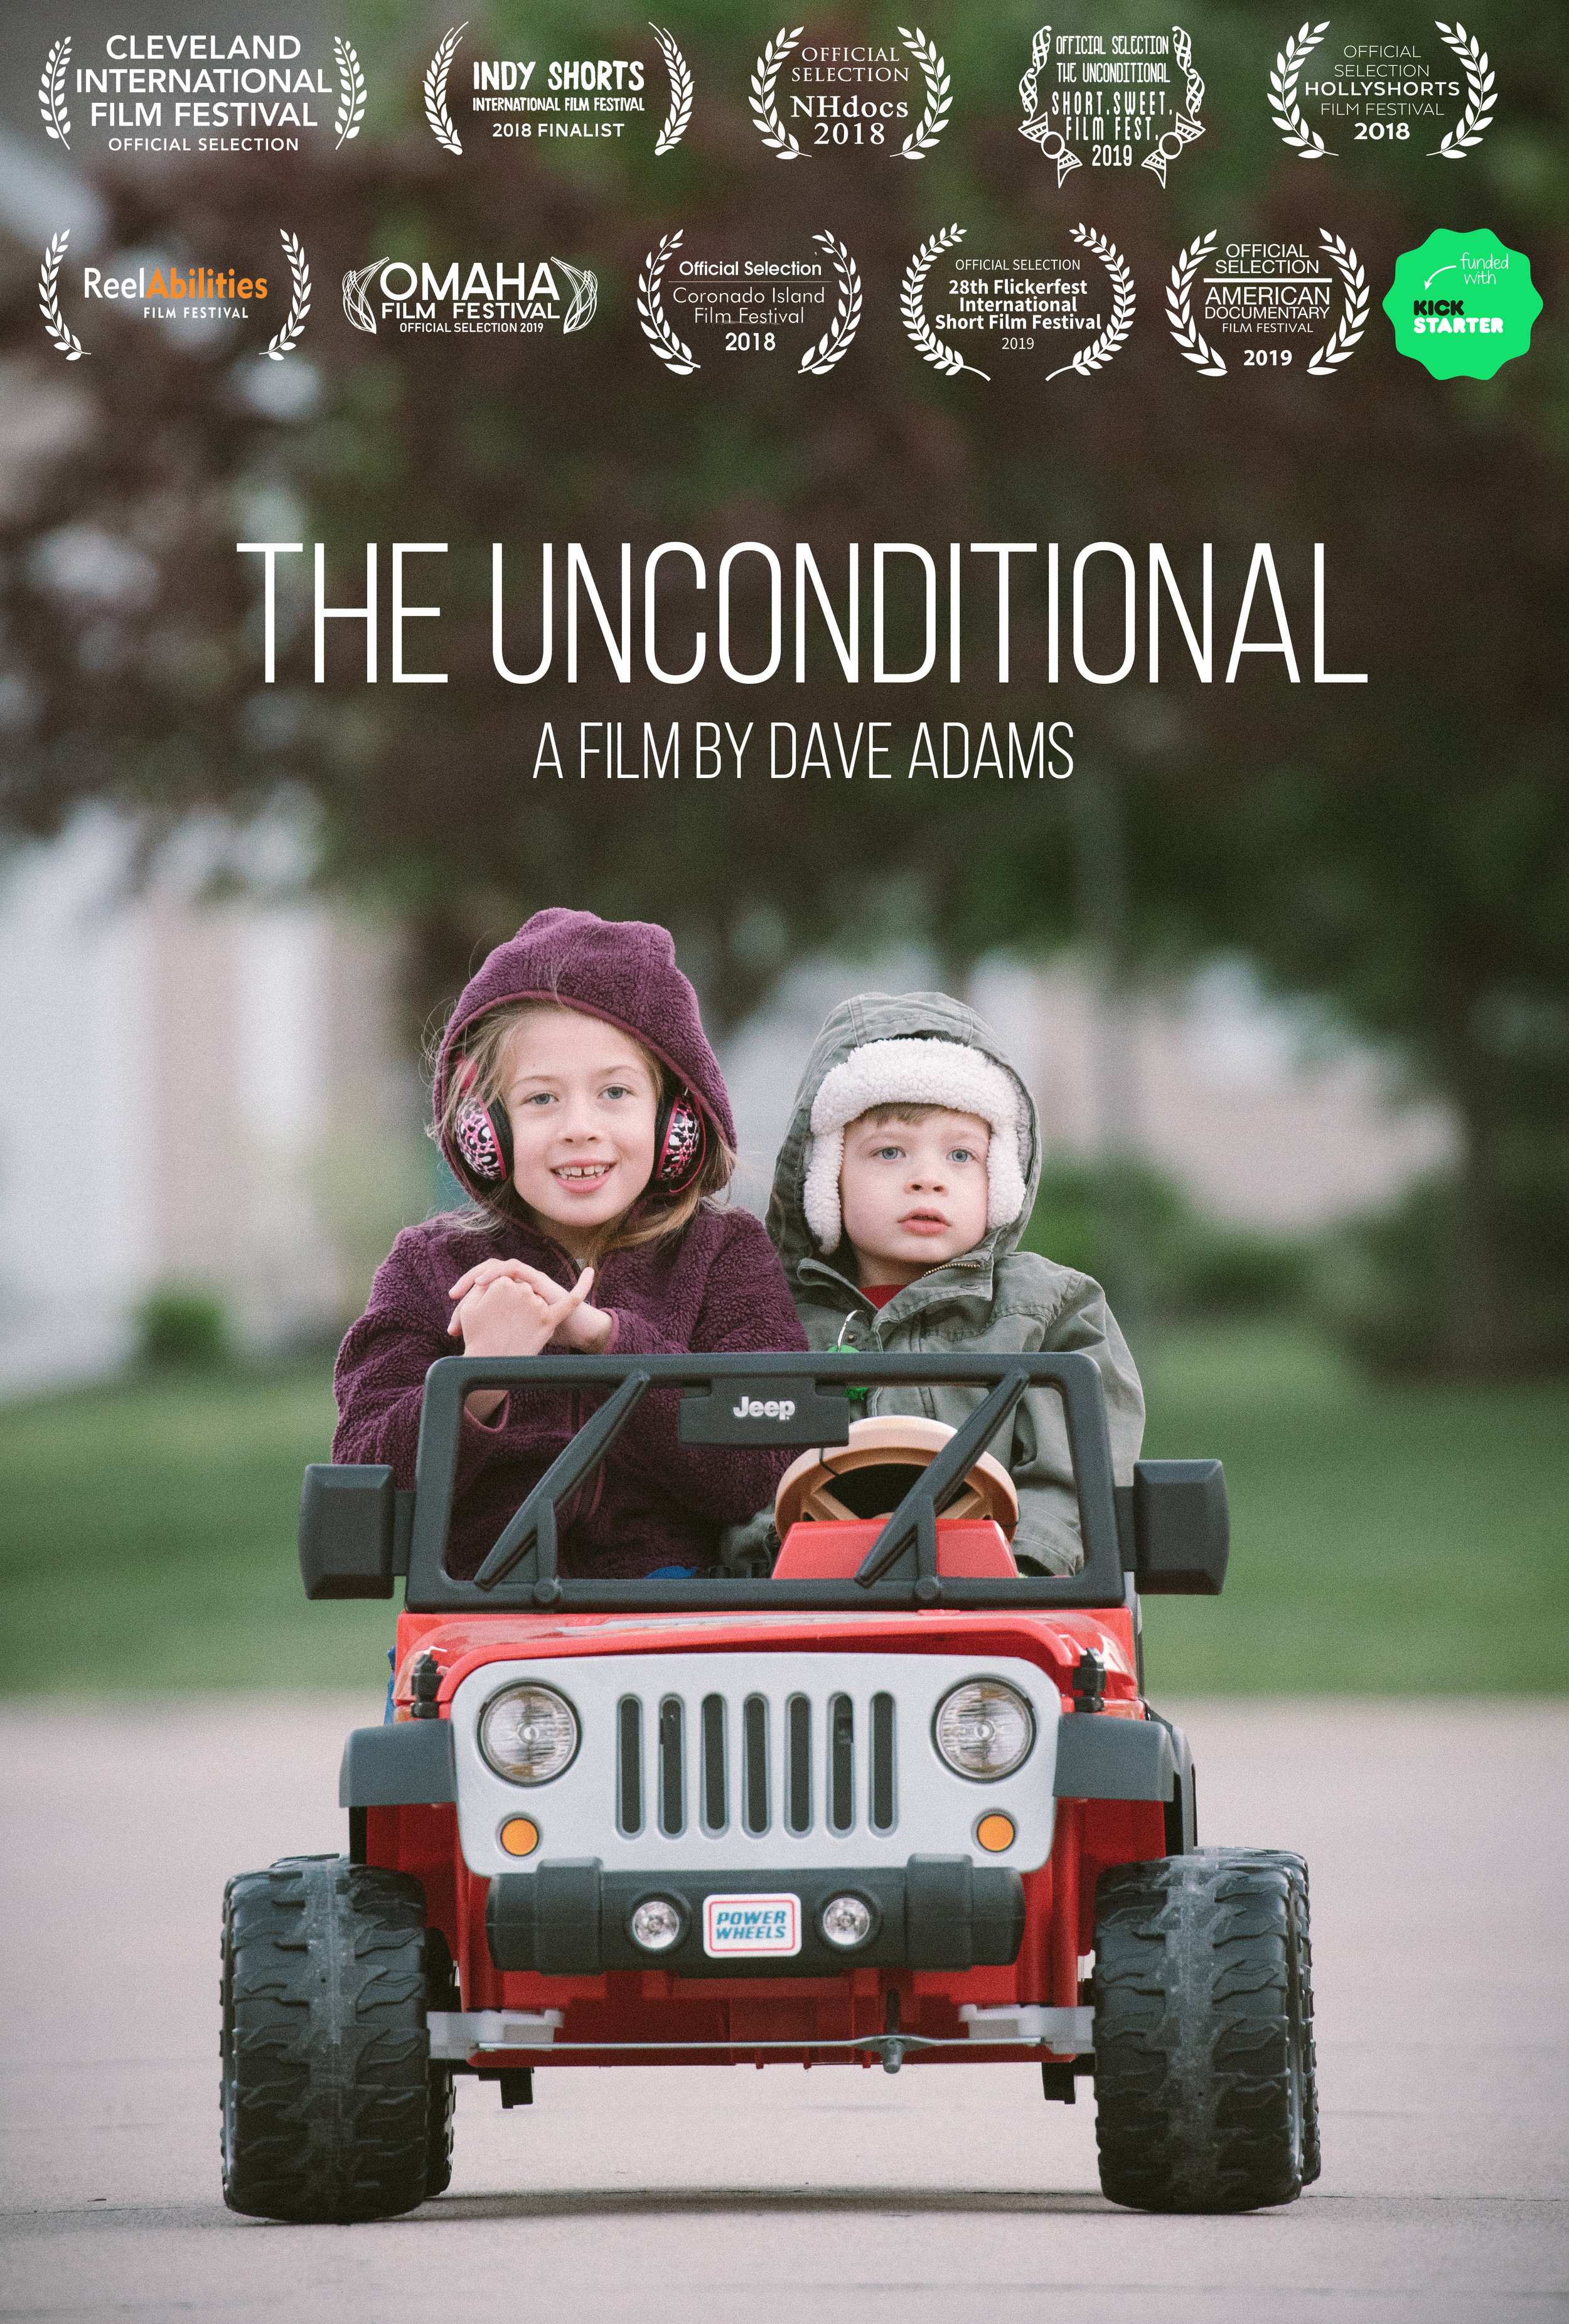 The Unconditional Poster w Laurels 2019.jpg